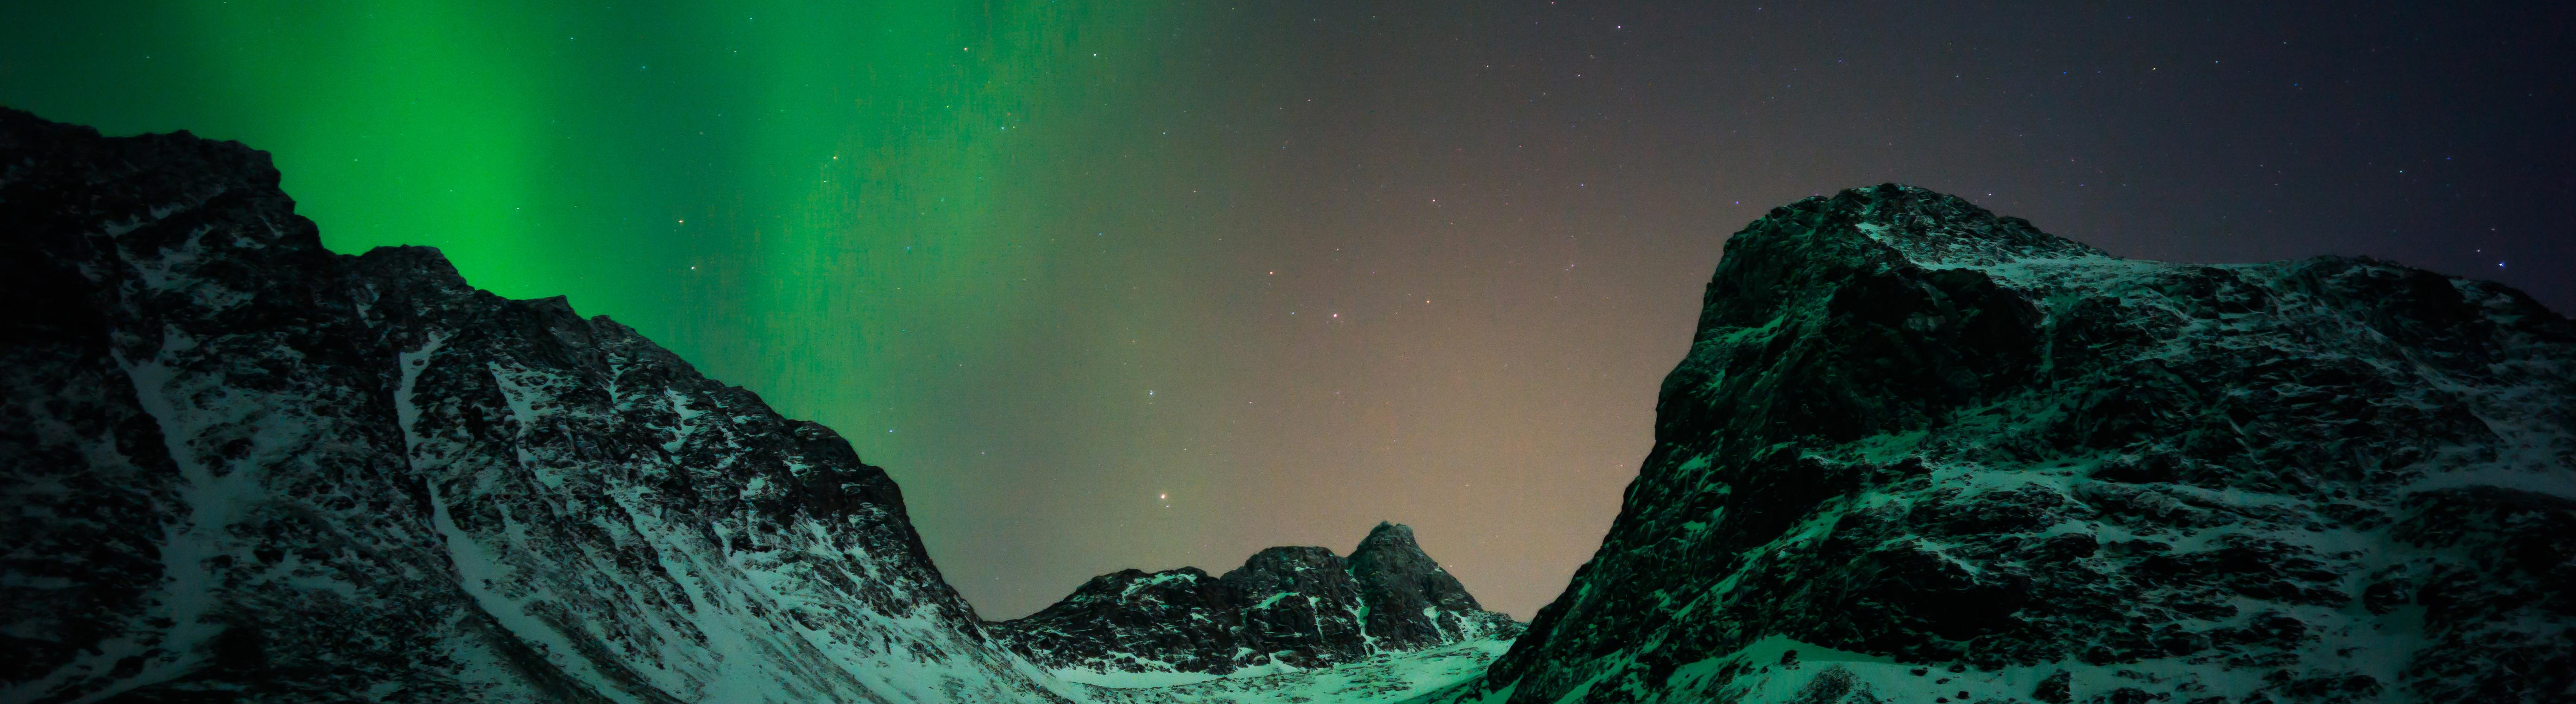 Aurora borealis - Northern Lights - CCUS - Exploration-Production - Total